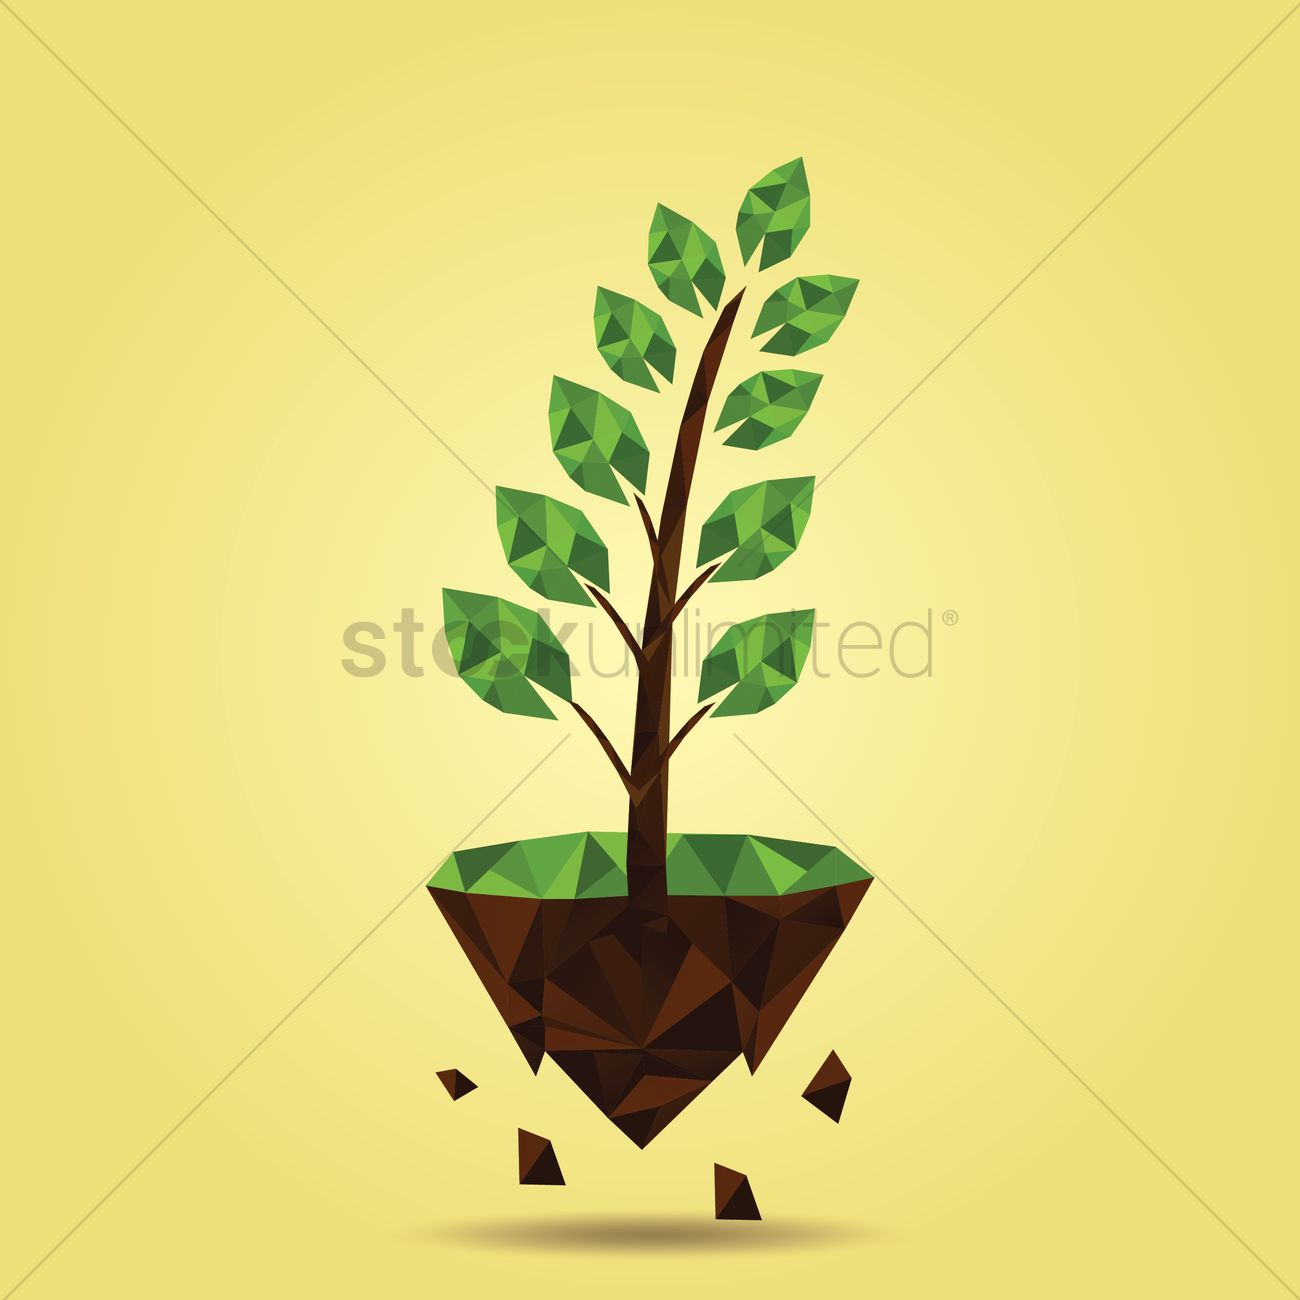 Free Plant on floating island Vector Image.